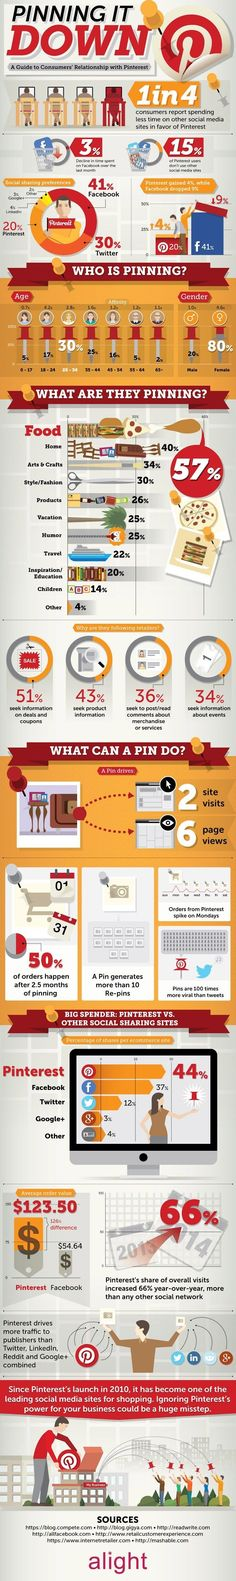 Pinning it Down: A Guide to Consumers' Relationship with Pinterest [Infographic] #SocialMedia #Pinterest #Marketing